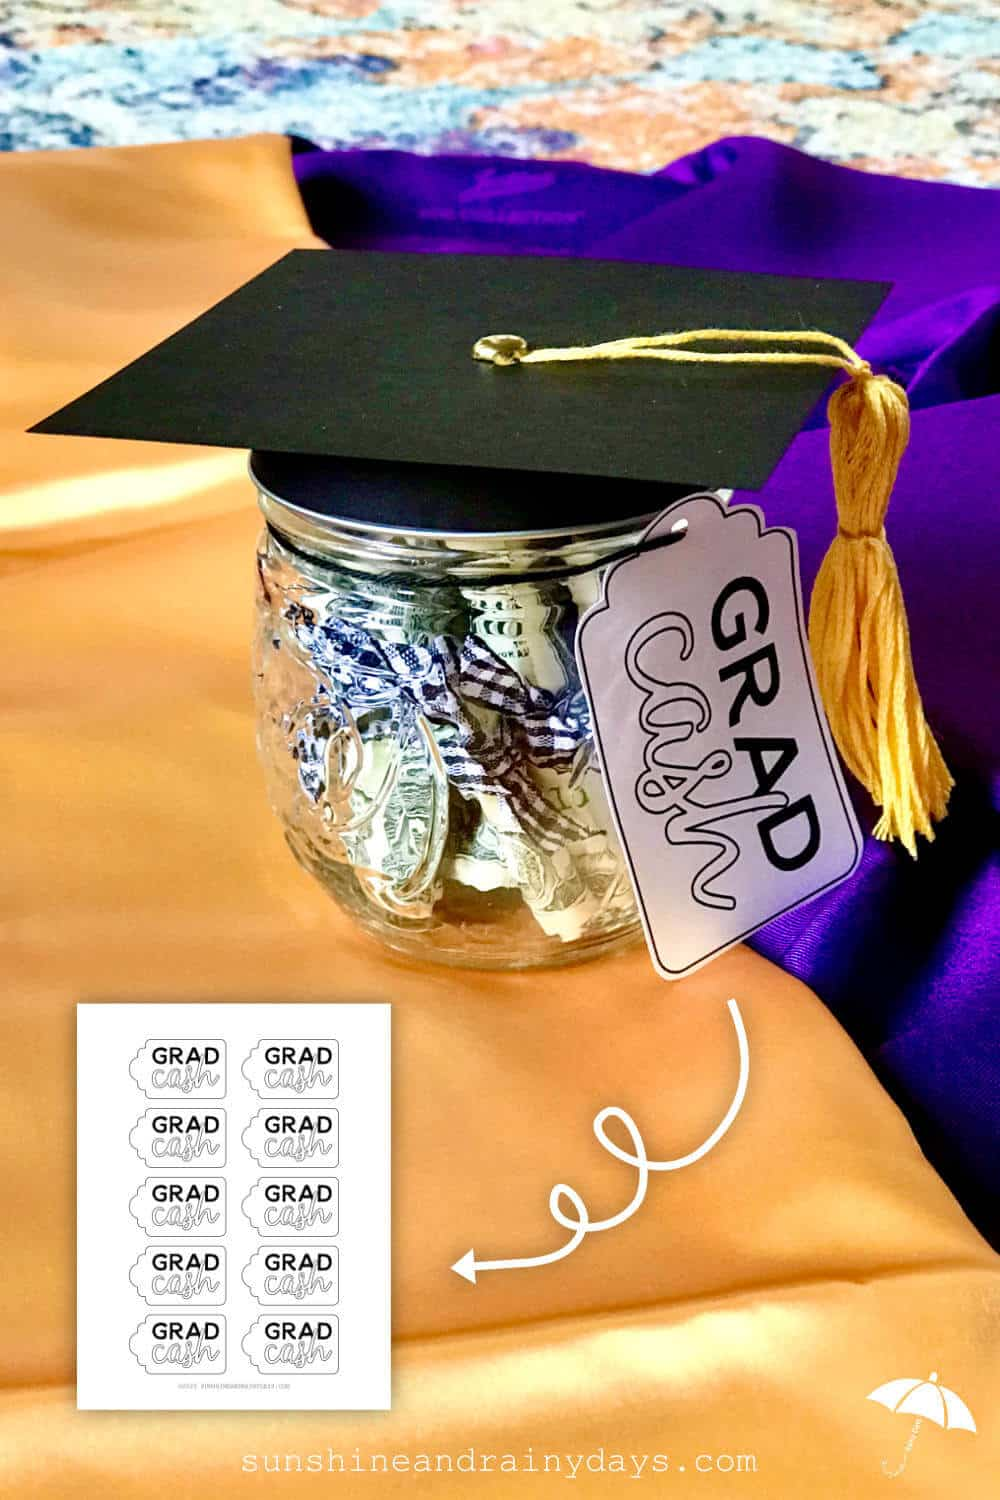 Grad Cash Tag Printable For Grad Cash Money Jar